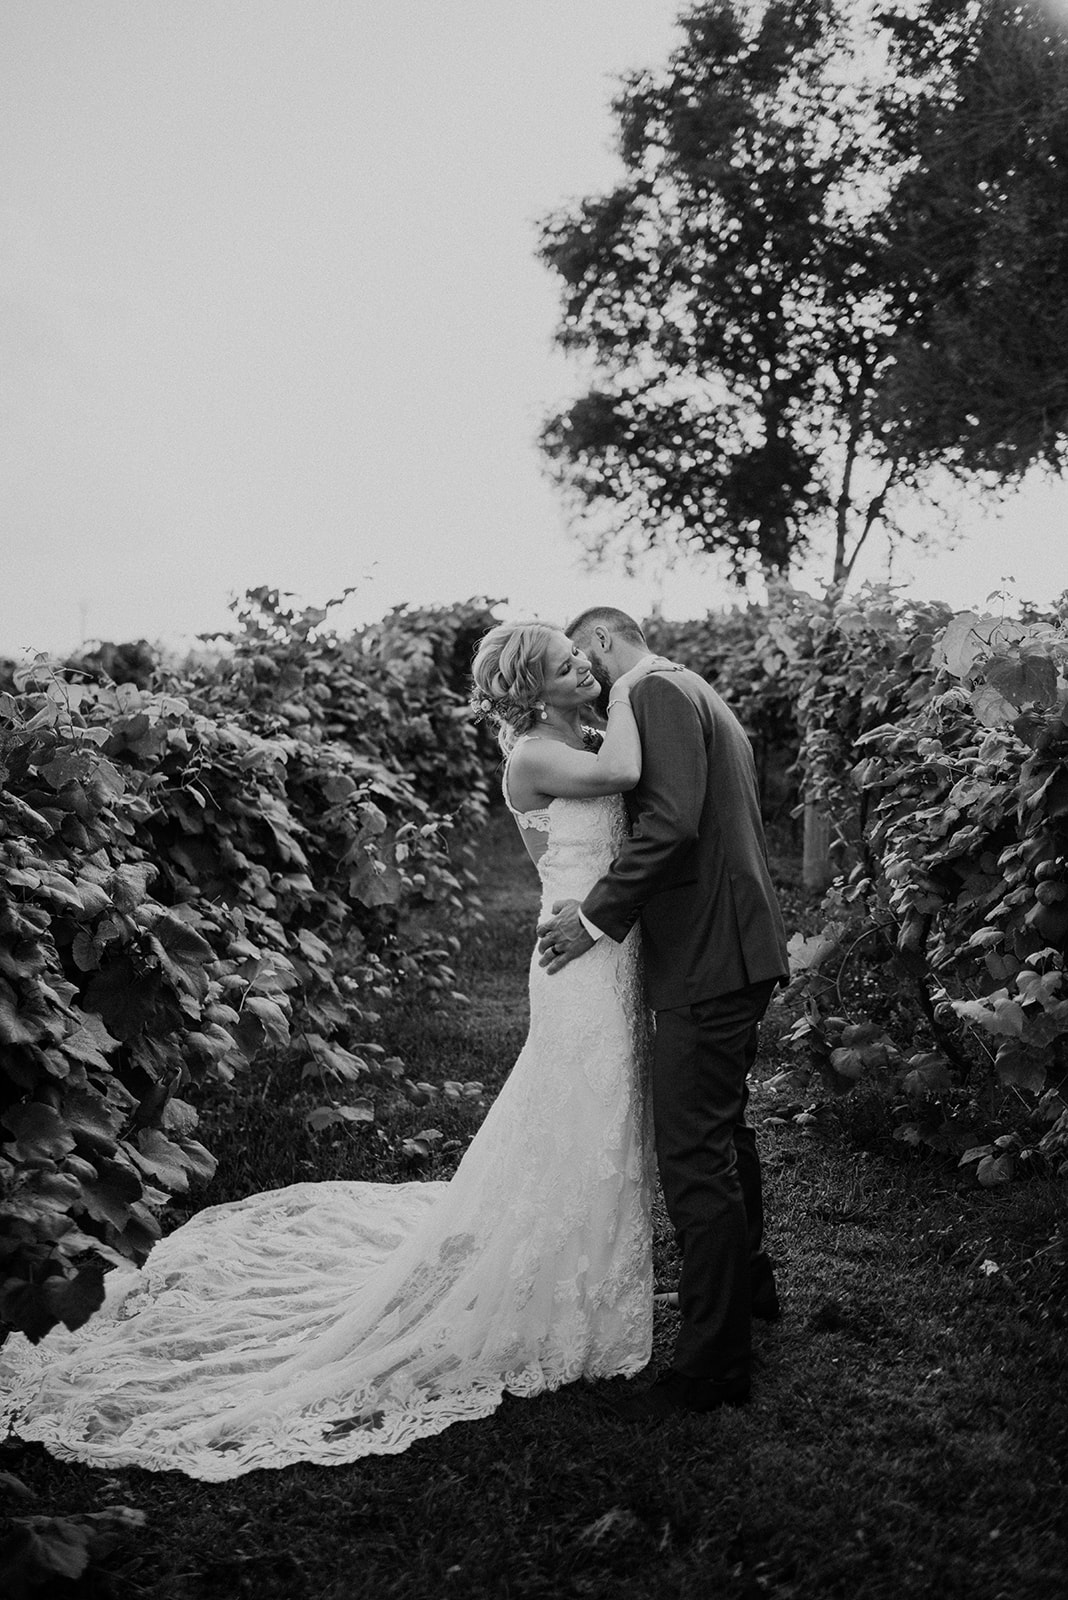 overthevineswisconsinwedding_0892.jpg